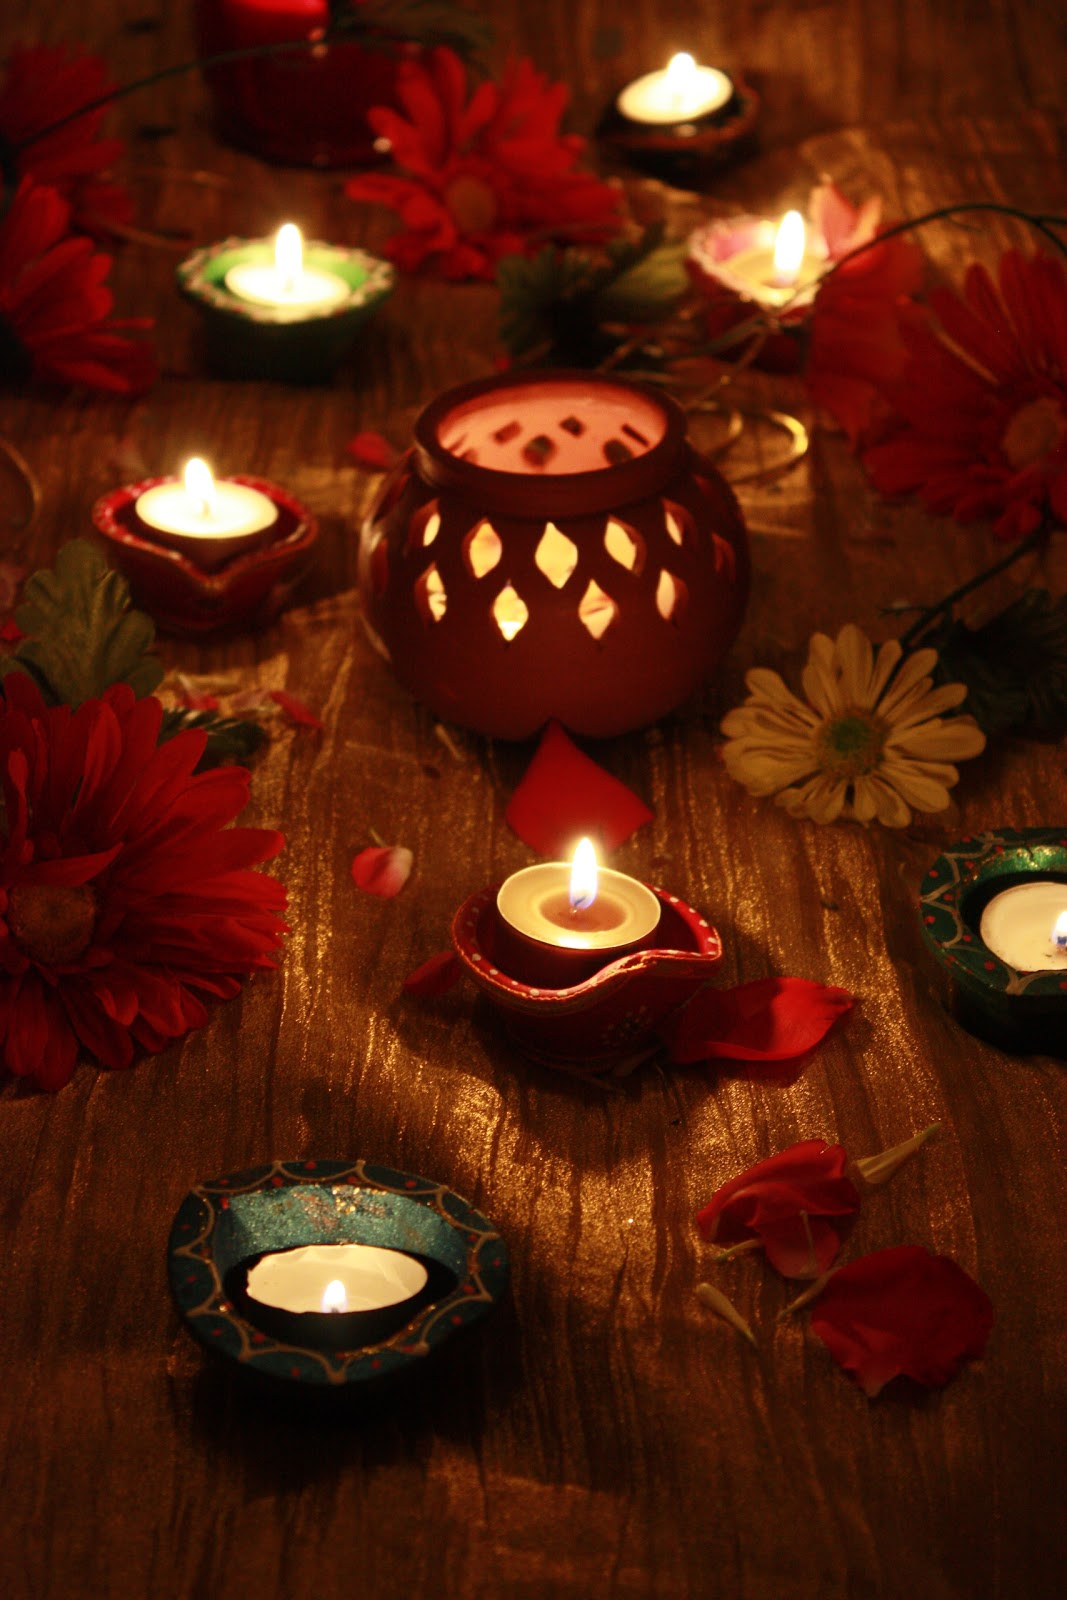 Sreelus Tasty Travels: Diwali Decoration Inspirations - Day I